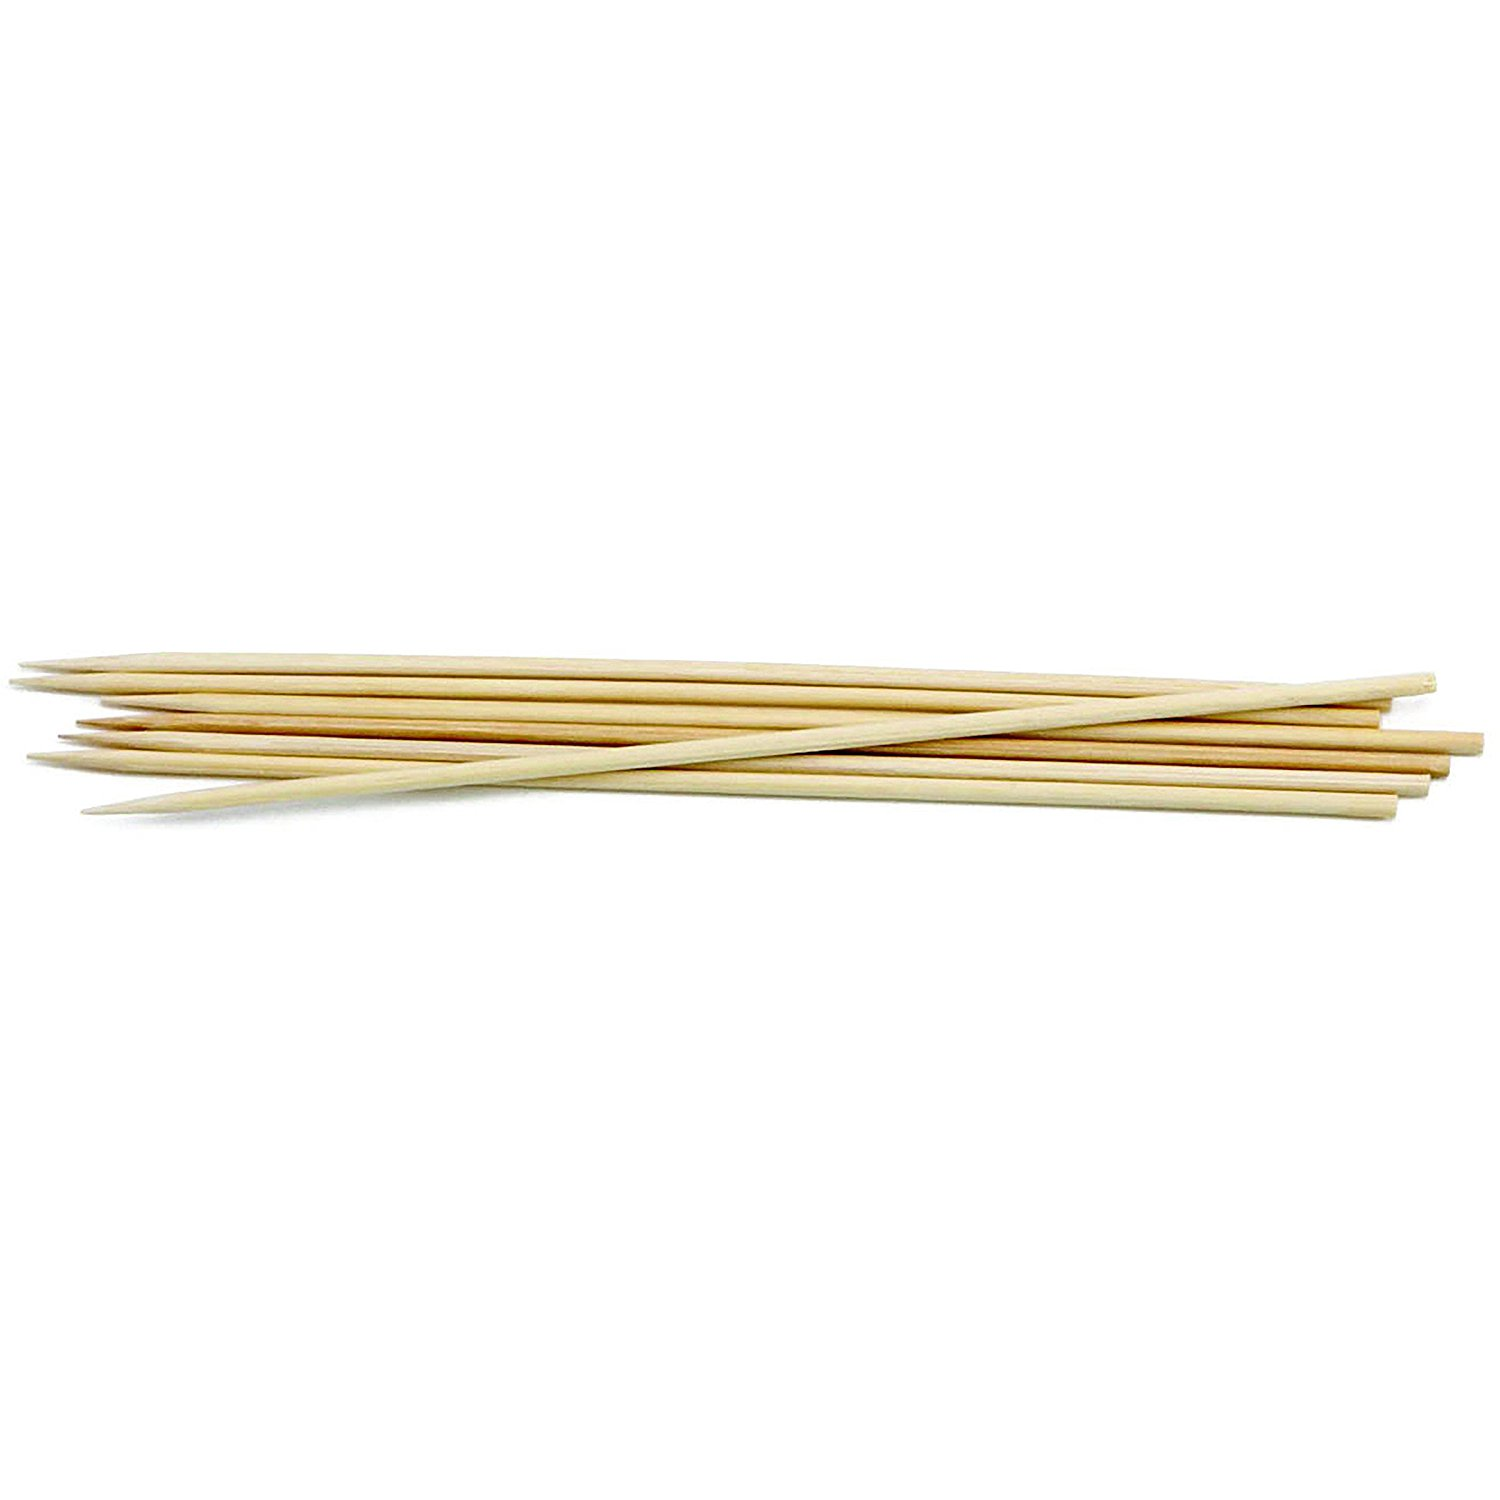 """TableCraft Products 908 8"""" Bamboo Skewer, 7.88"""" Height, 0.12"""" Width, 0.12"""" Length (Pack of 1000)"""